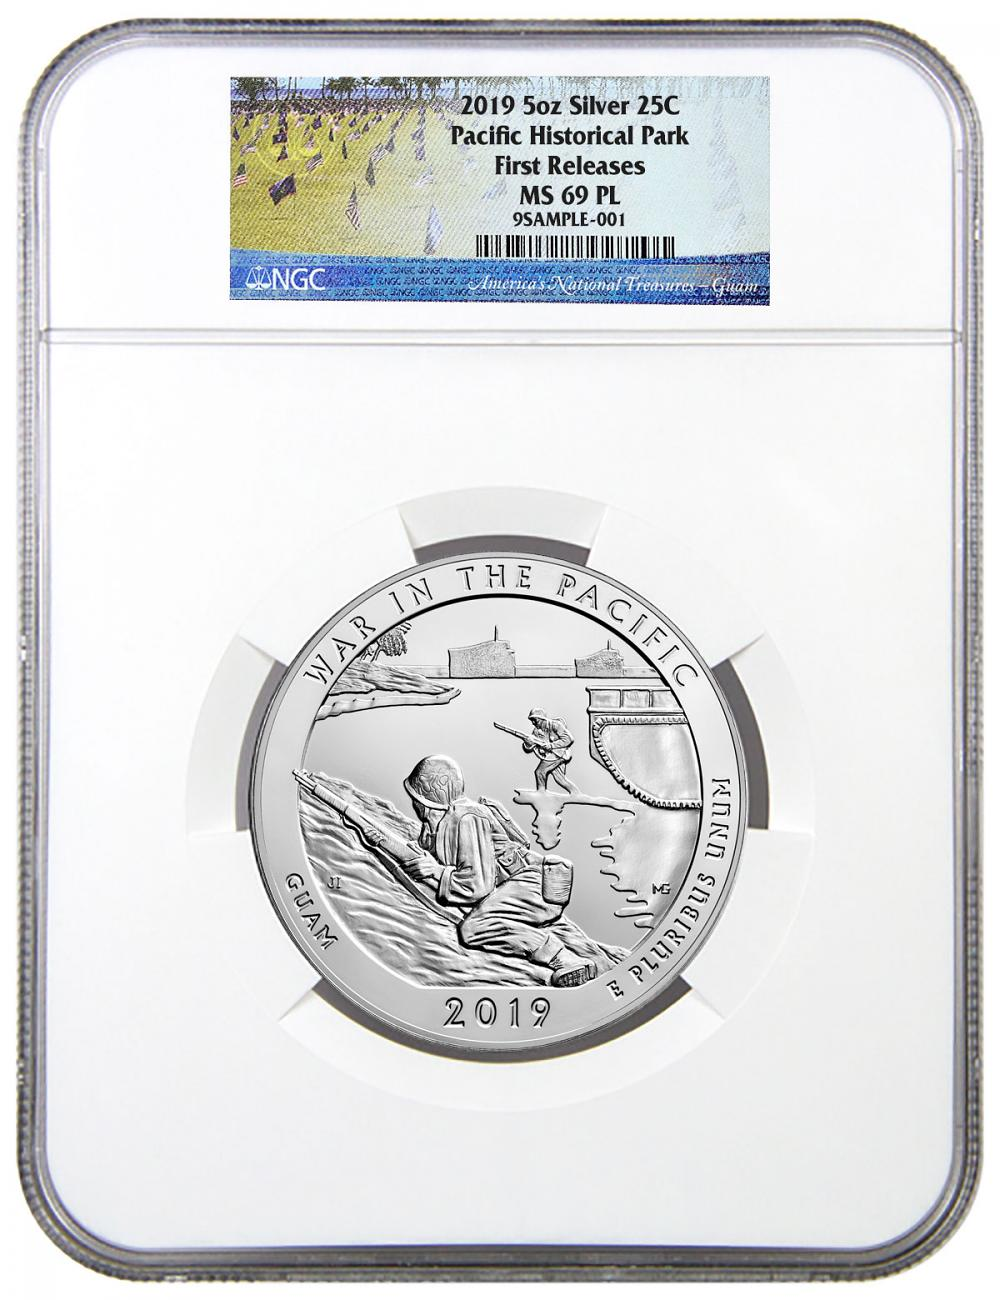 2019 25C 5 oz. Silver ATB War in the Pacific National Historic Park (Guam) Coin NGC MS69 PL FR